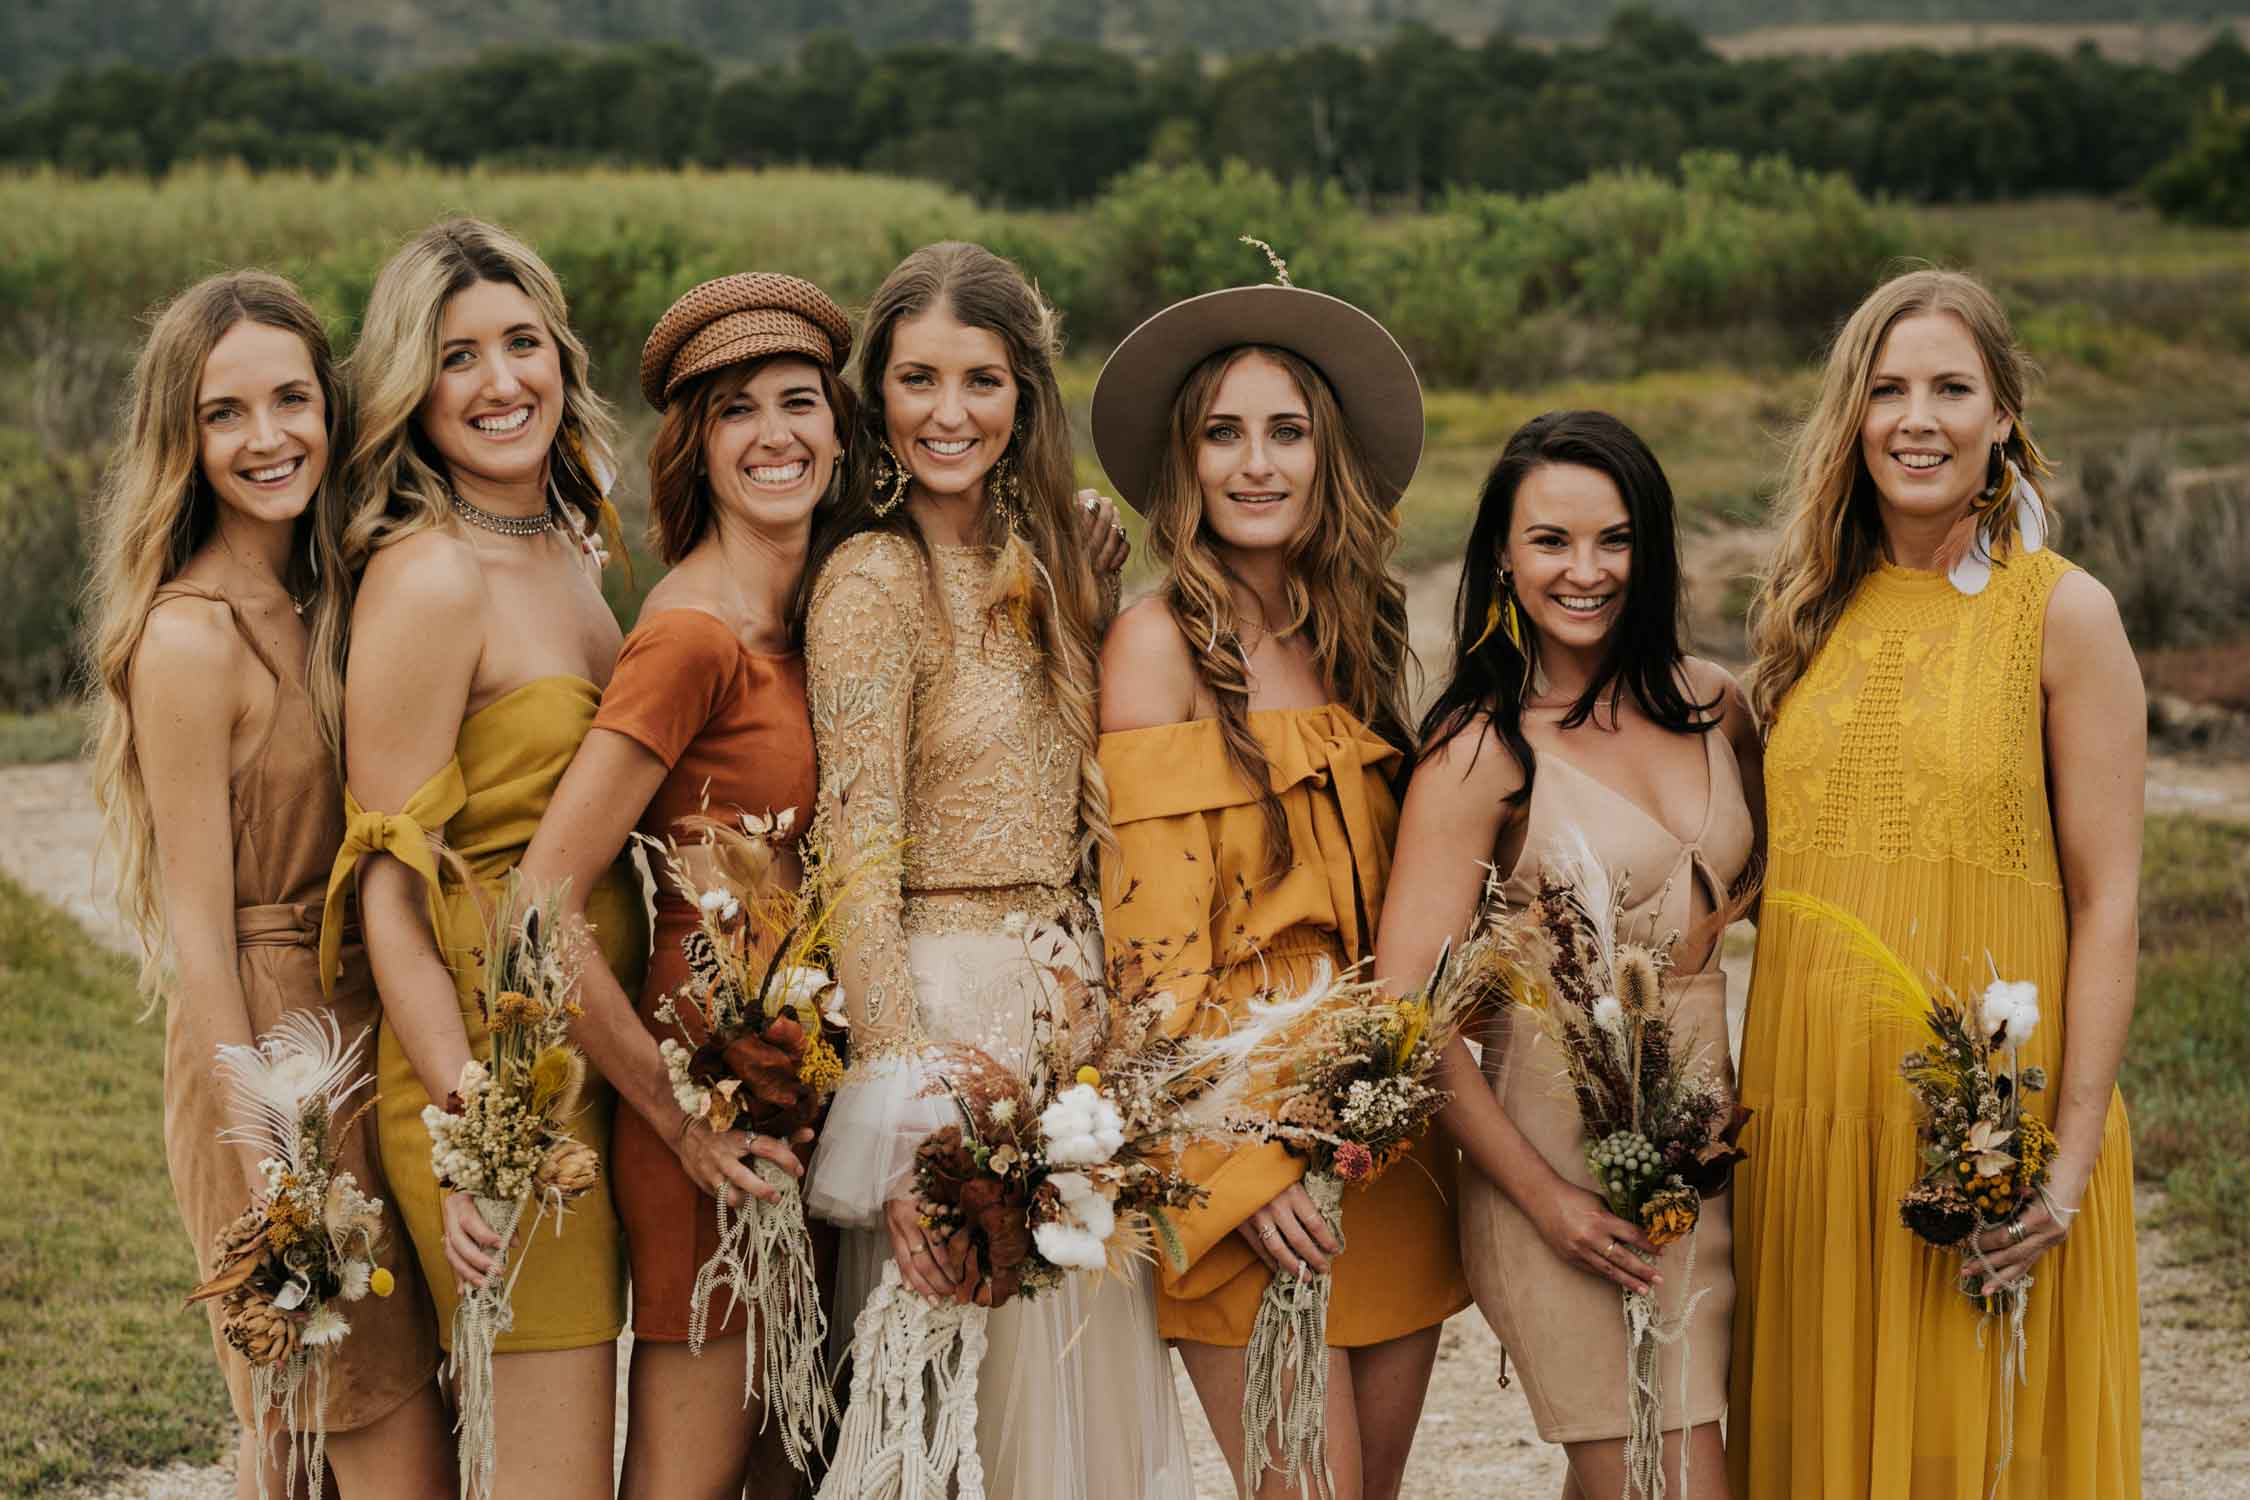 The ultimate boho gypsy bride tribe wearing gypsy sunshine, orange, yellow and rust coloured dresses, hats and leather boots